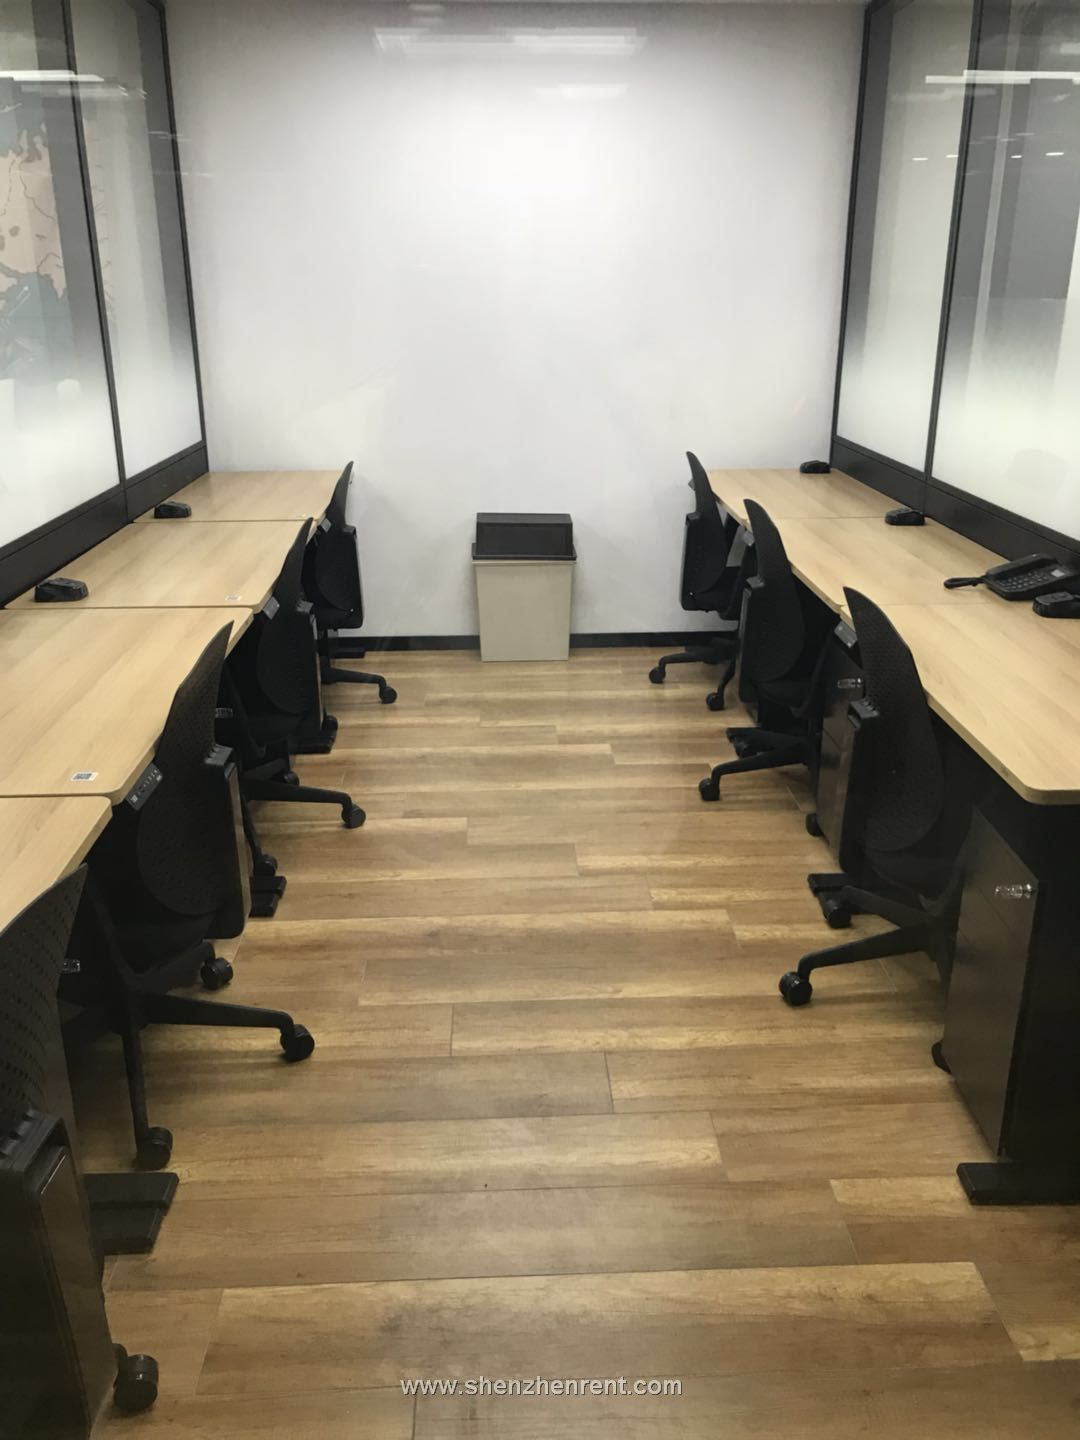 Wonderu open share area office in shekou for rent